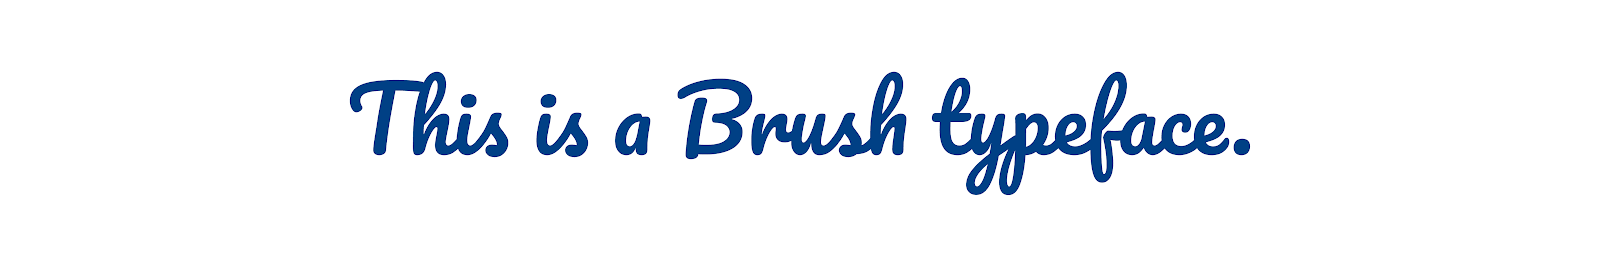 Brush typeface